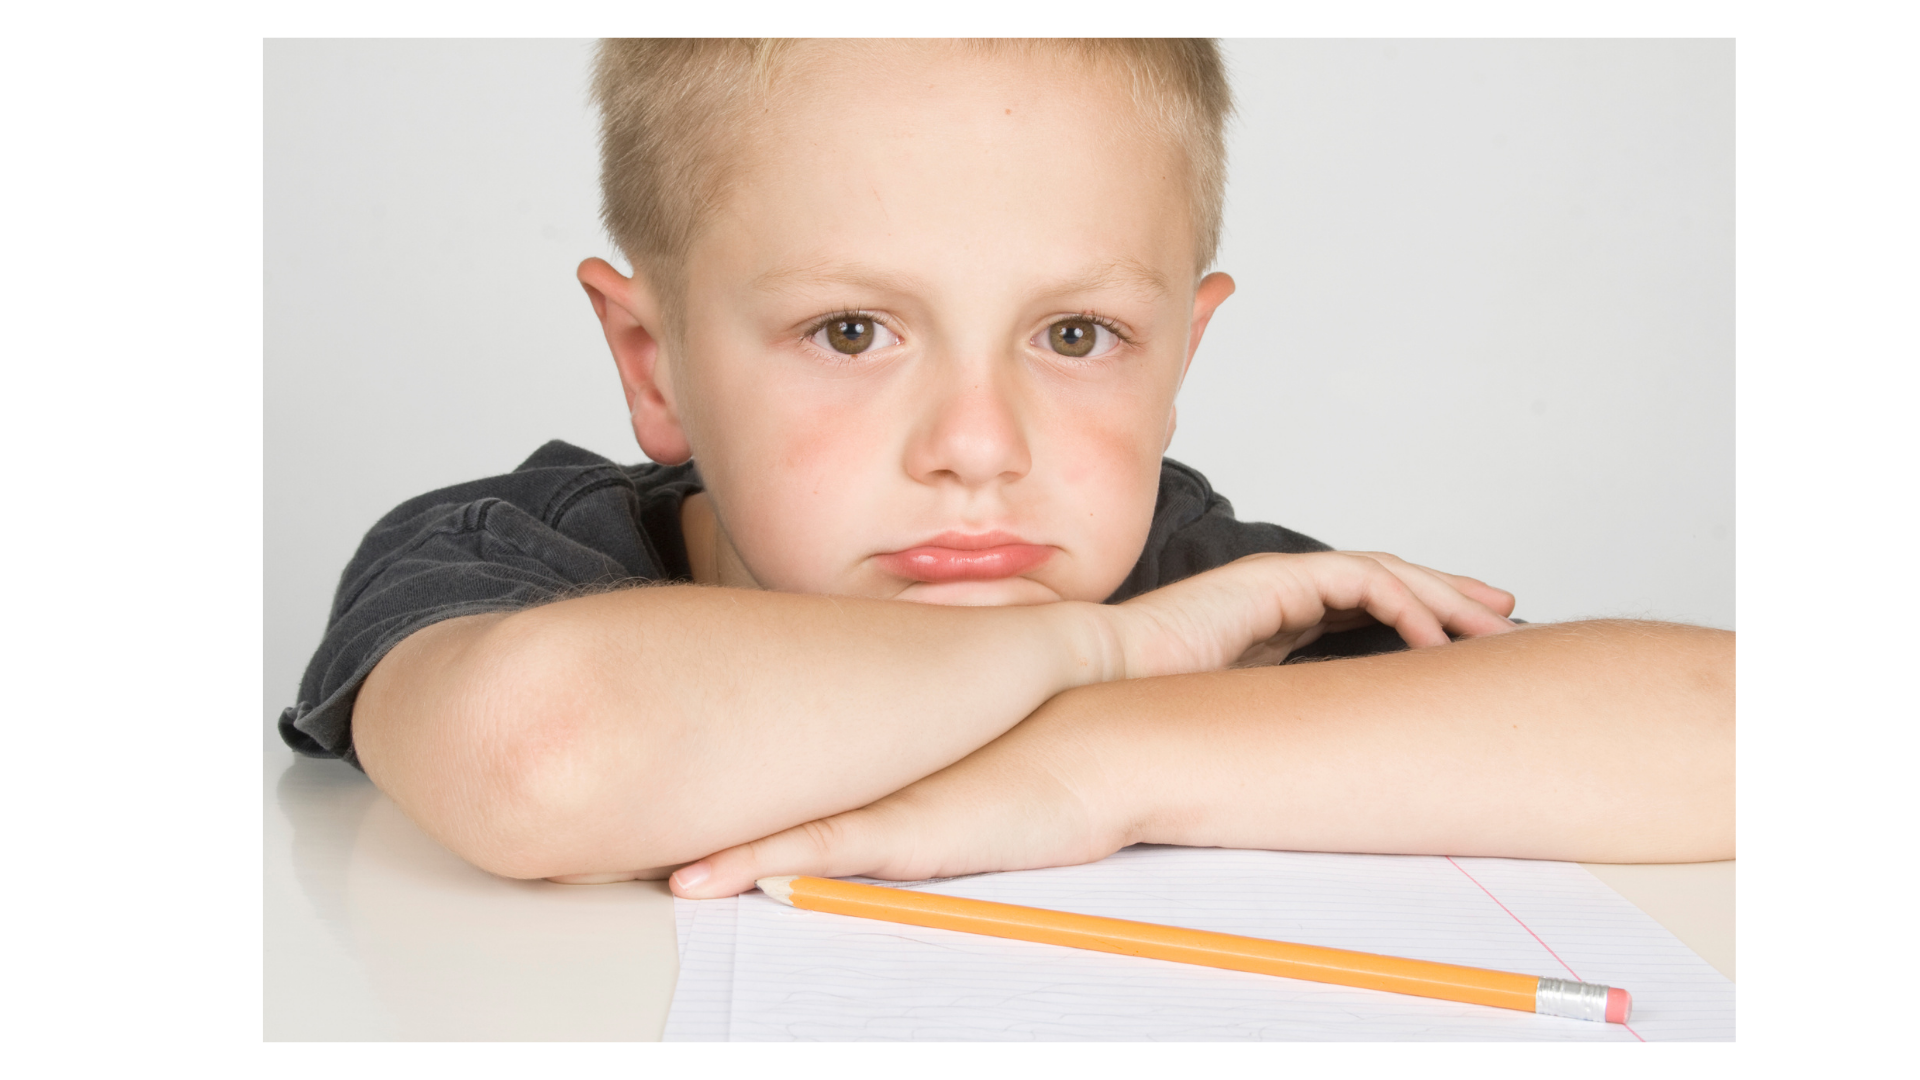 Unhappy kid with pencil and paper. Looks like he hates writing.